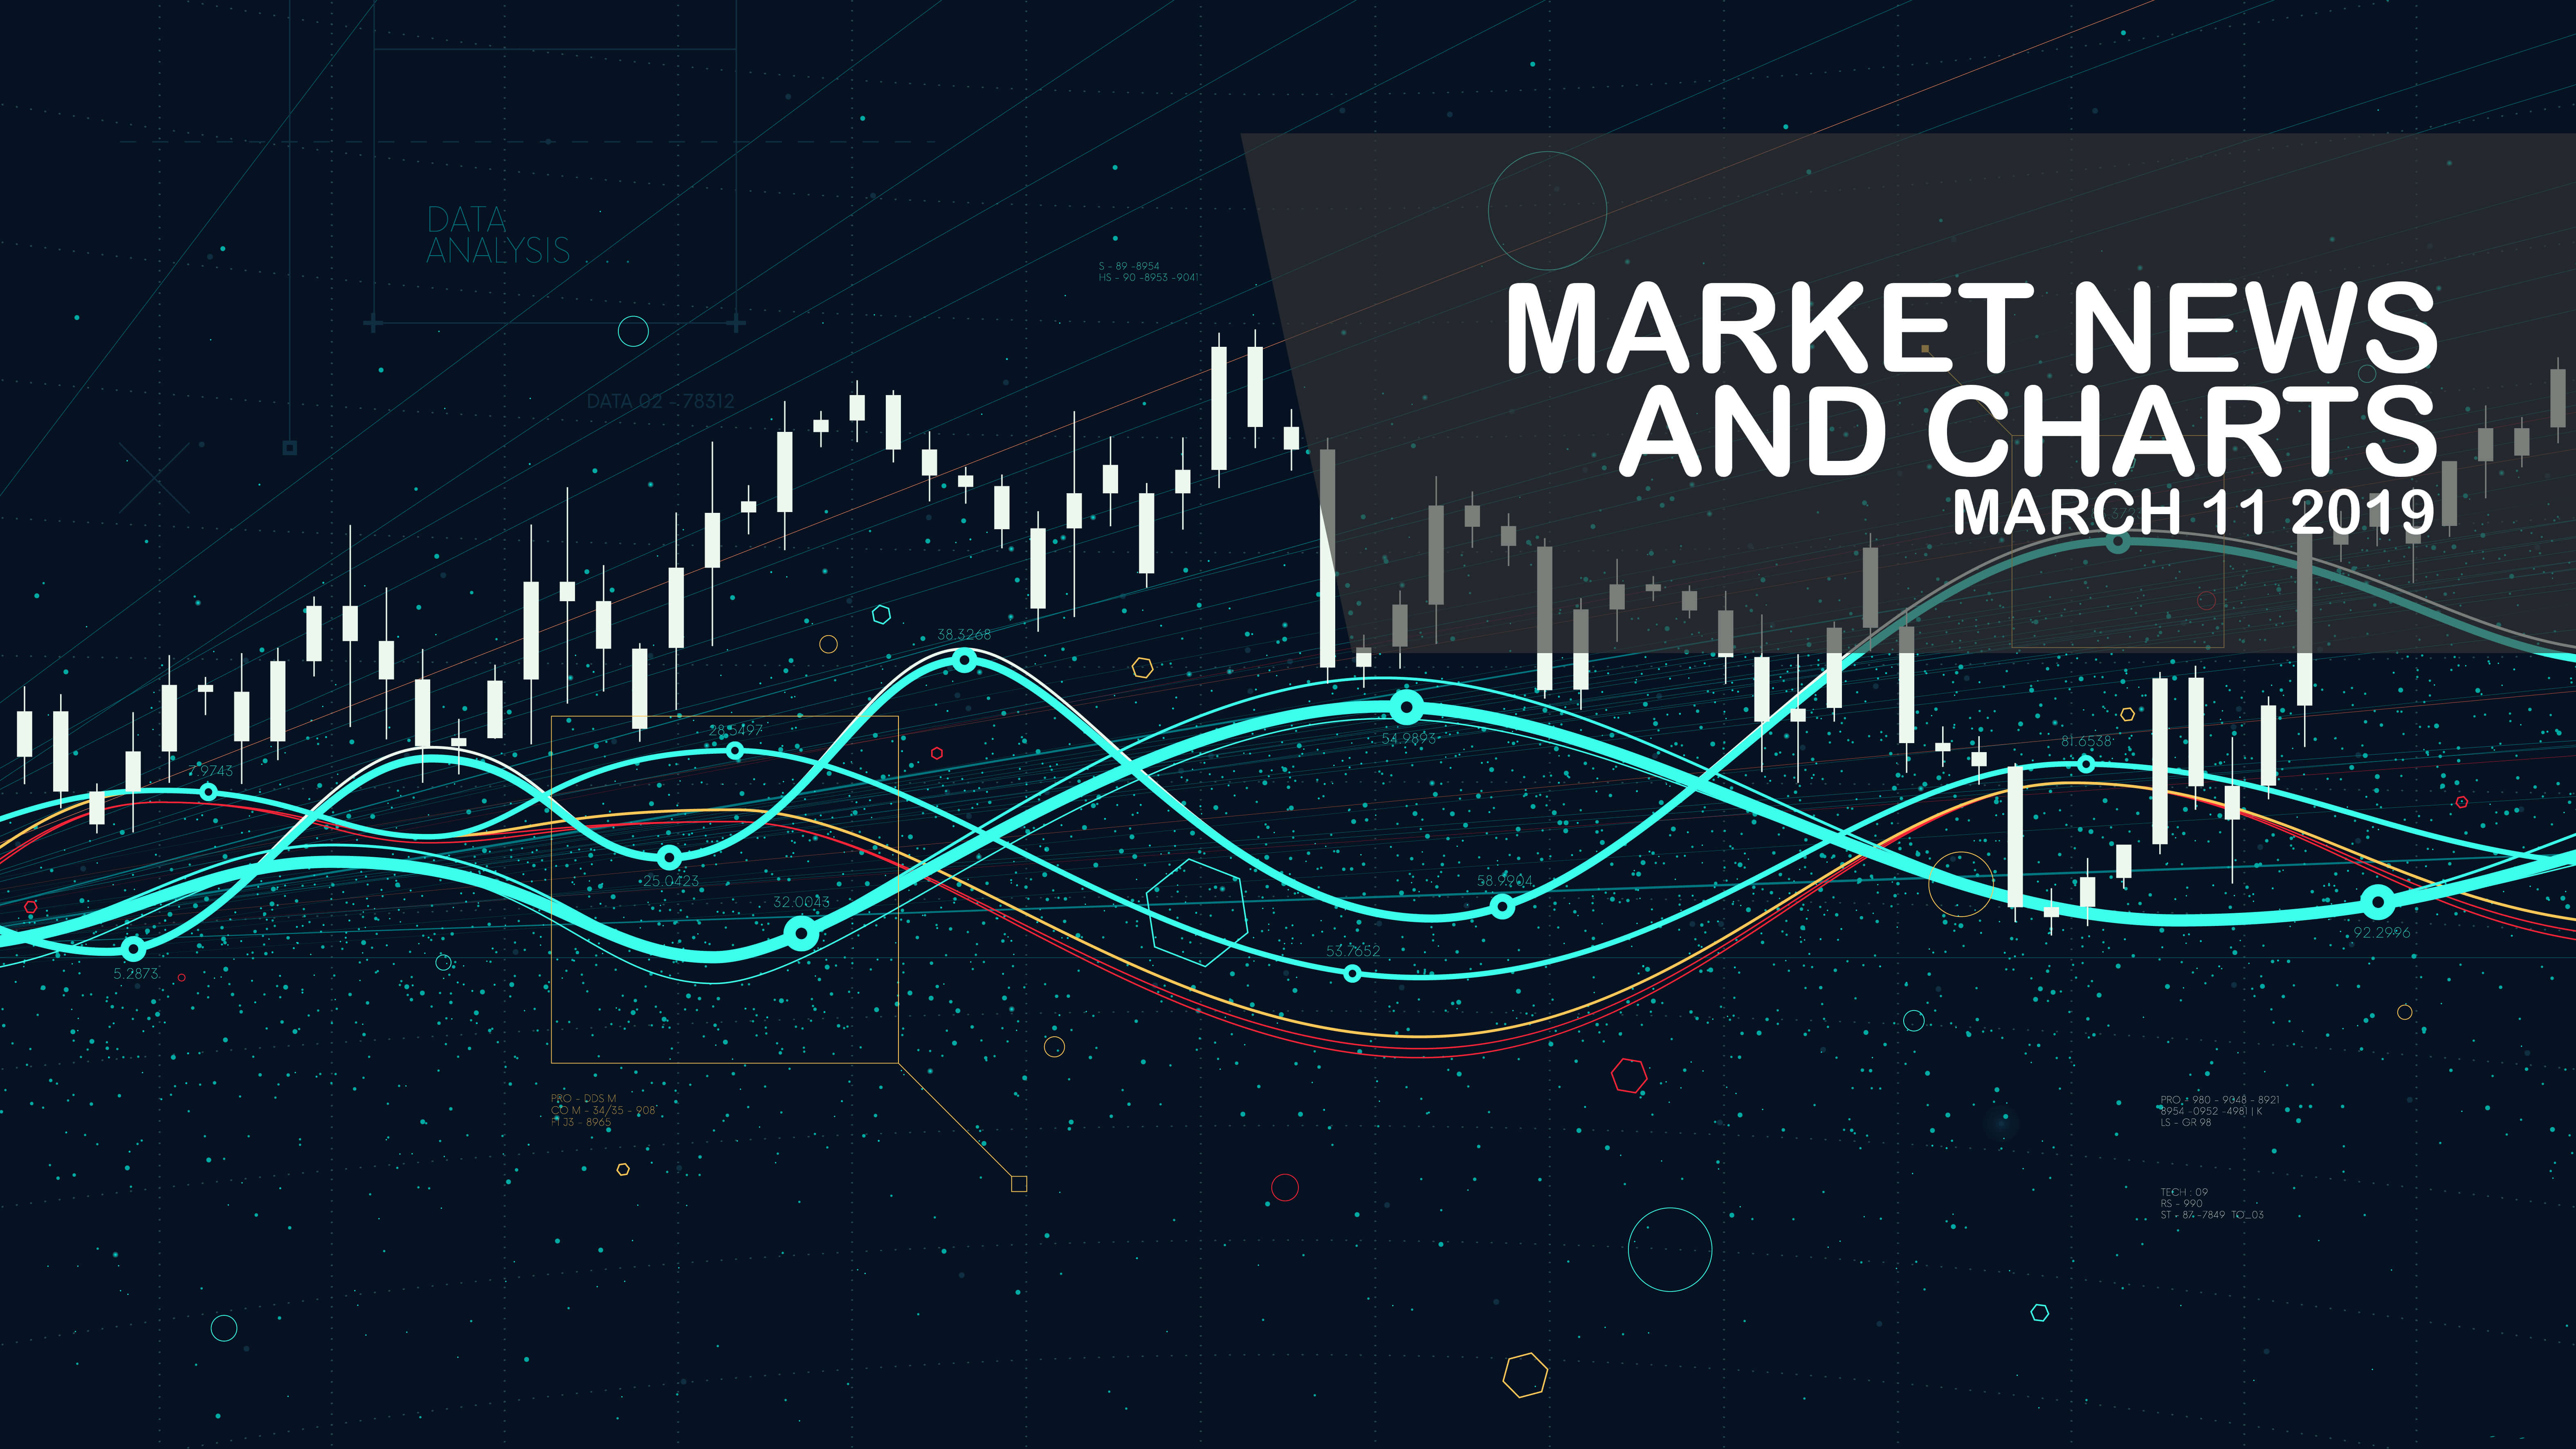 Market-News-and-Charts-March-11-2019-Finance-Brokerage1